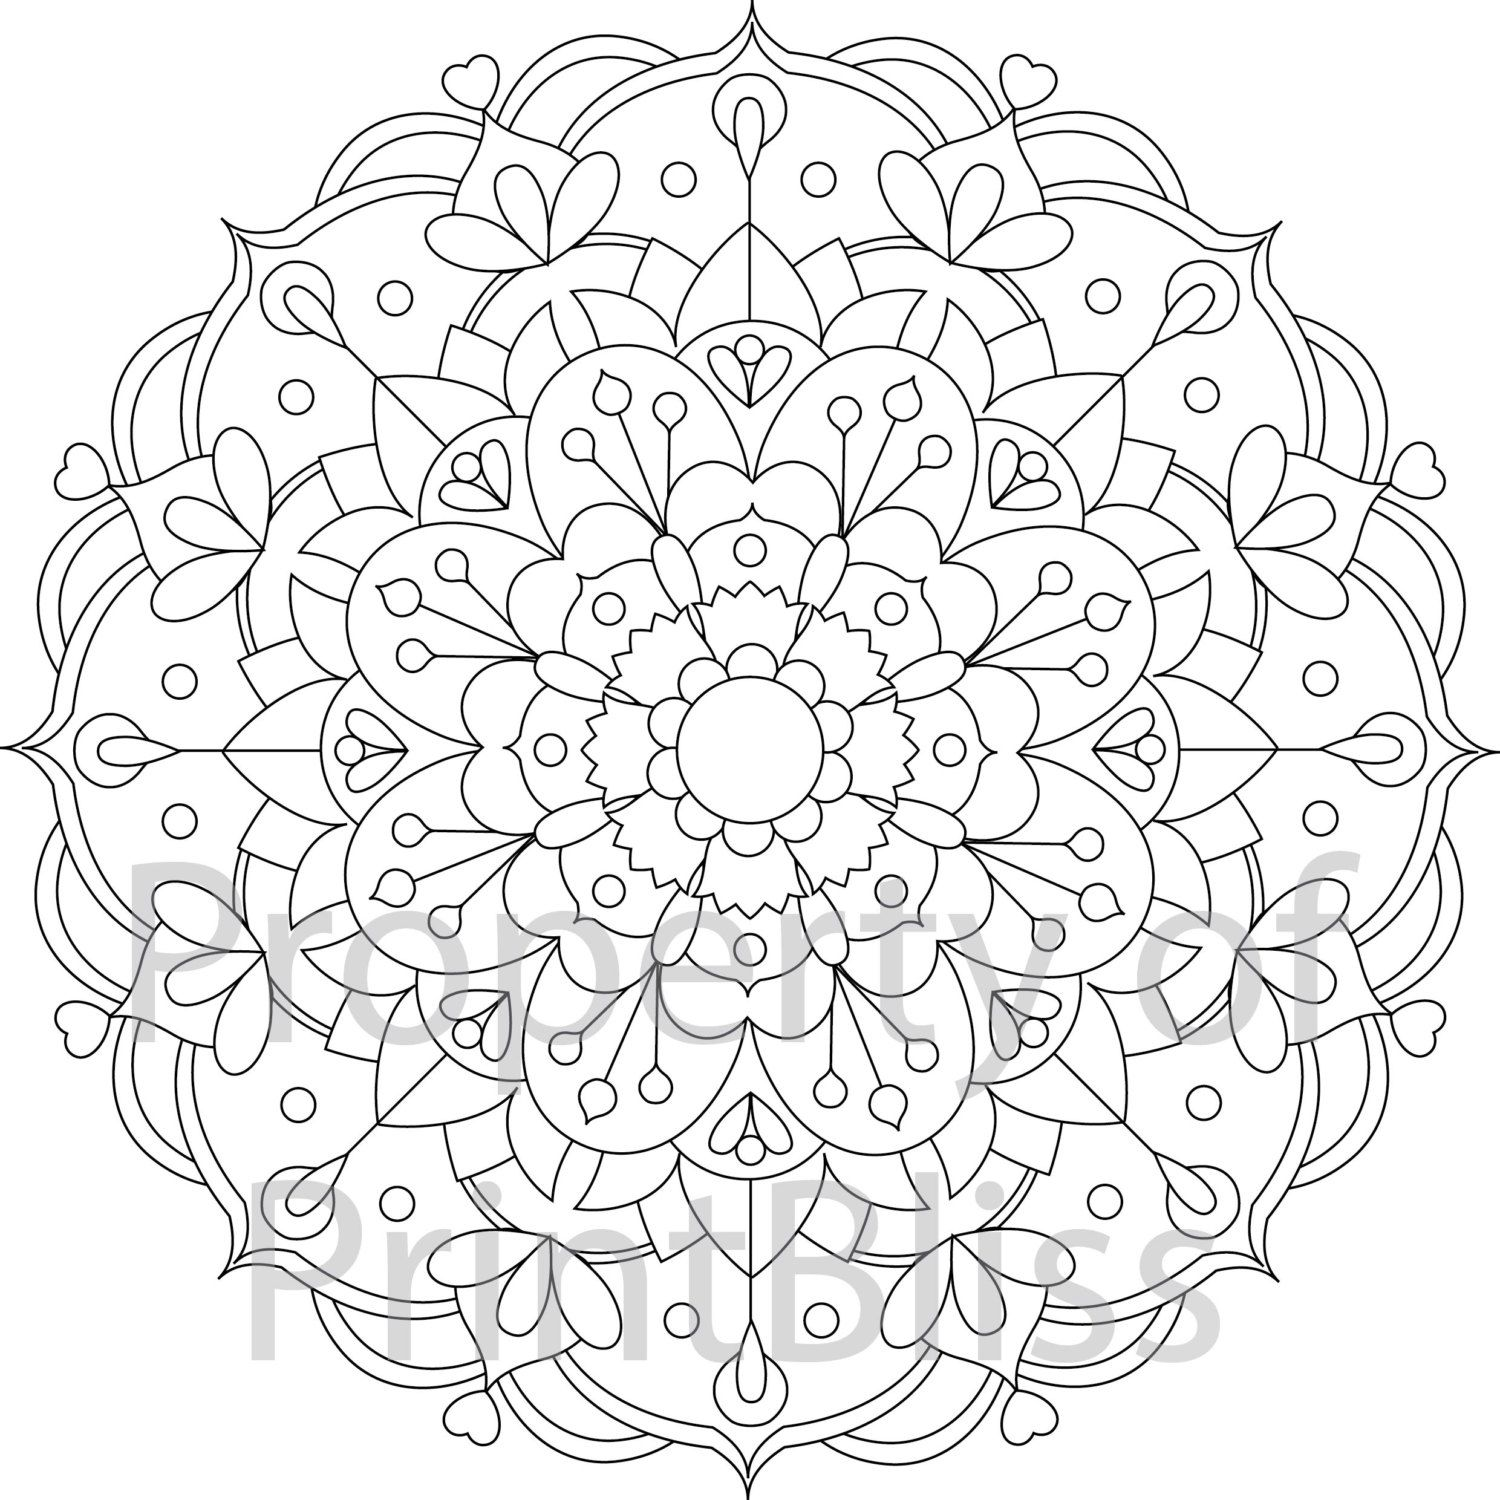 23 Flower Mandala printable coloring page by PrintBliss